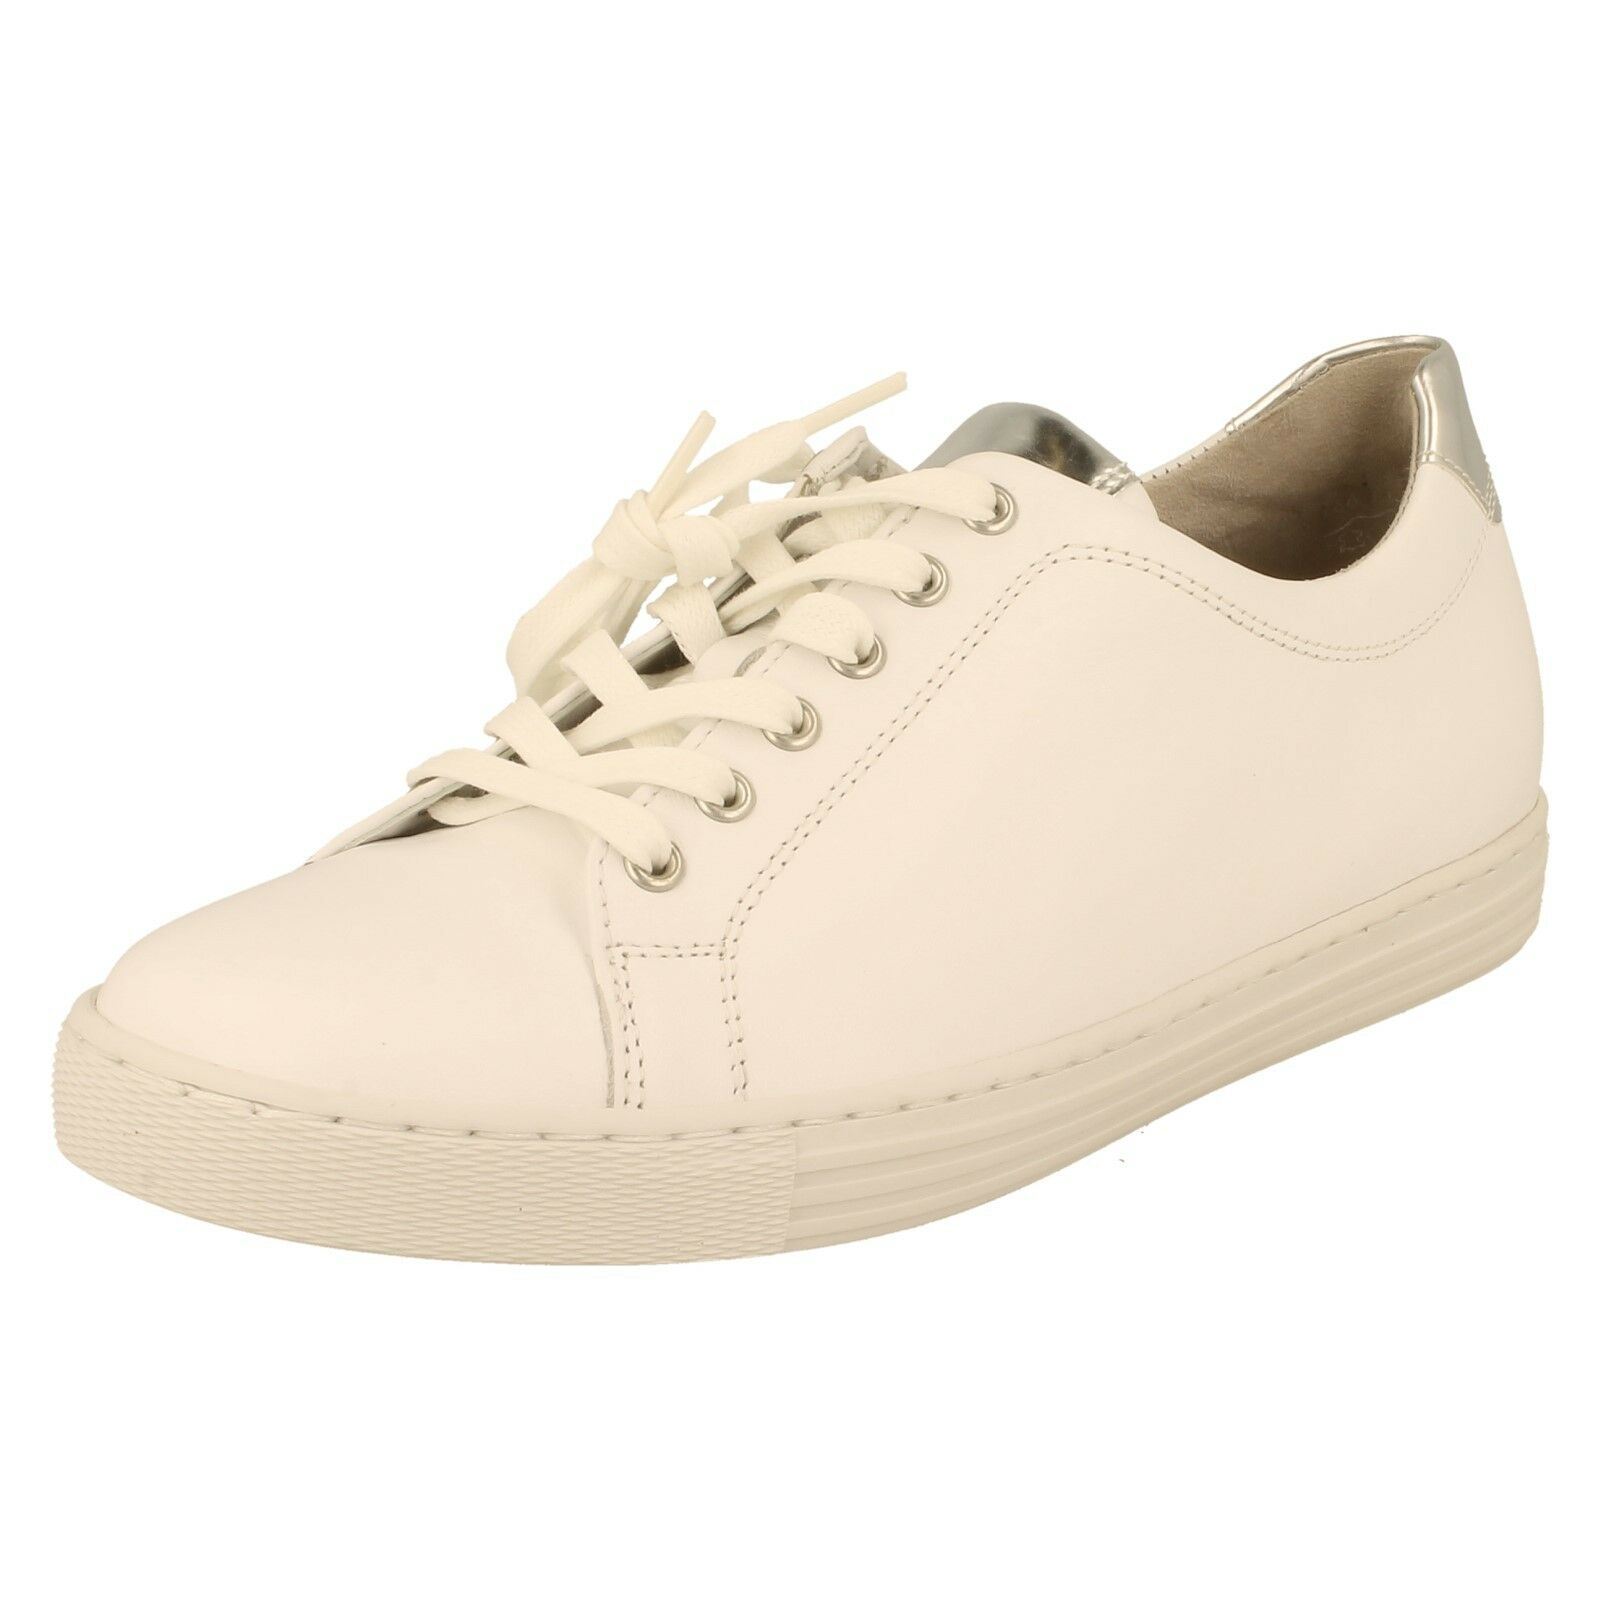 low priced 30f0c 66ff4 Femmes gabor wide fit baskets décontractées - 66.486 66.486 66.486 755374